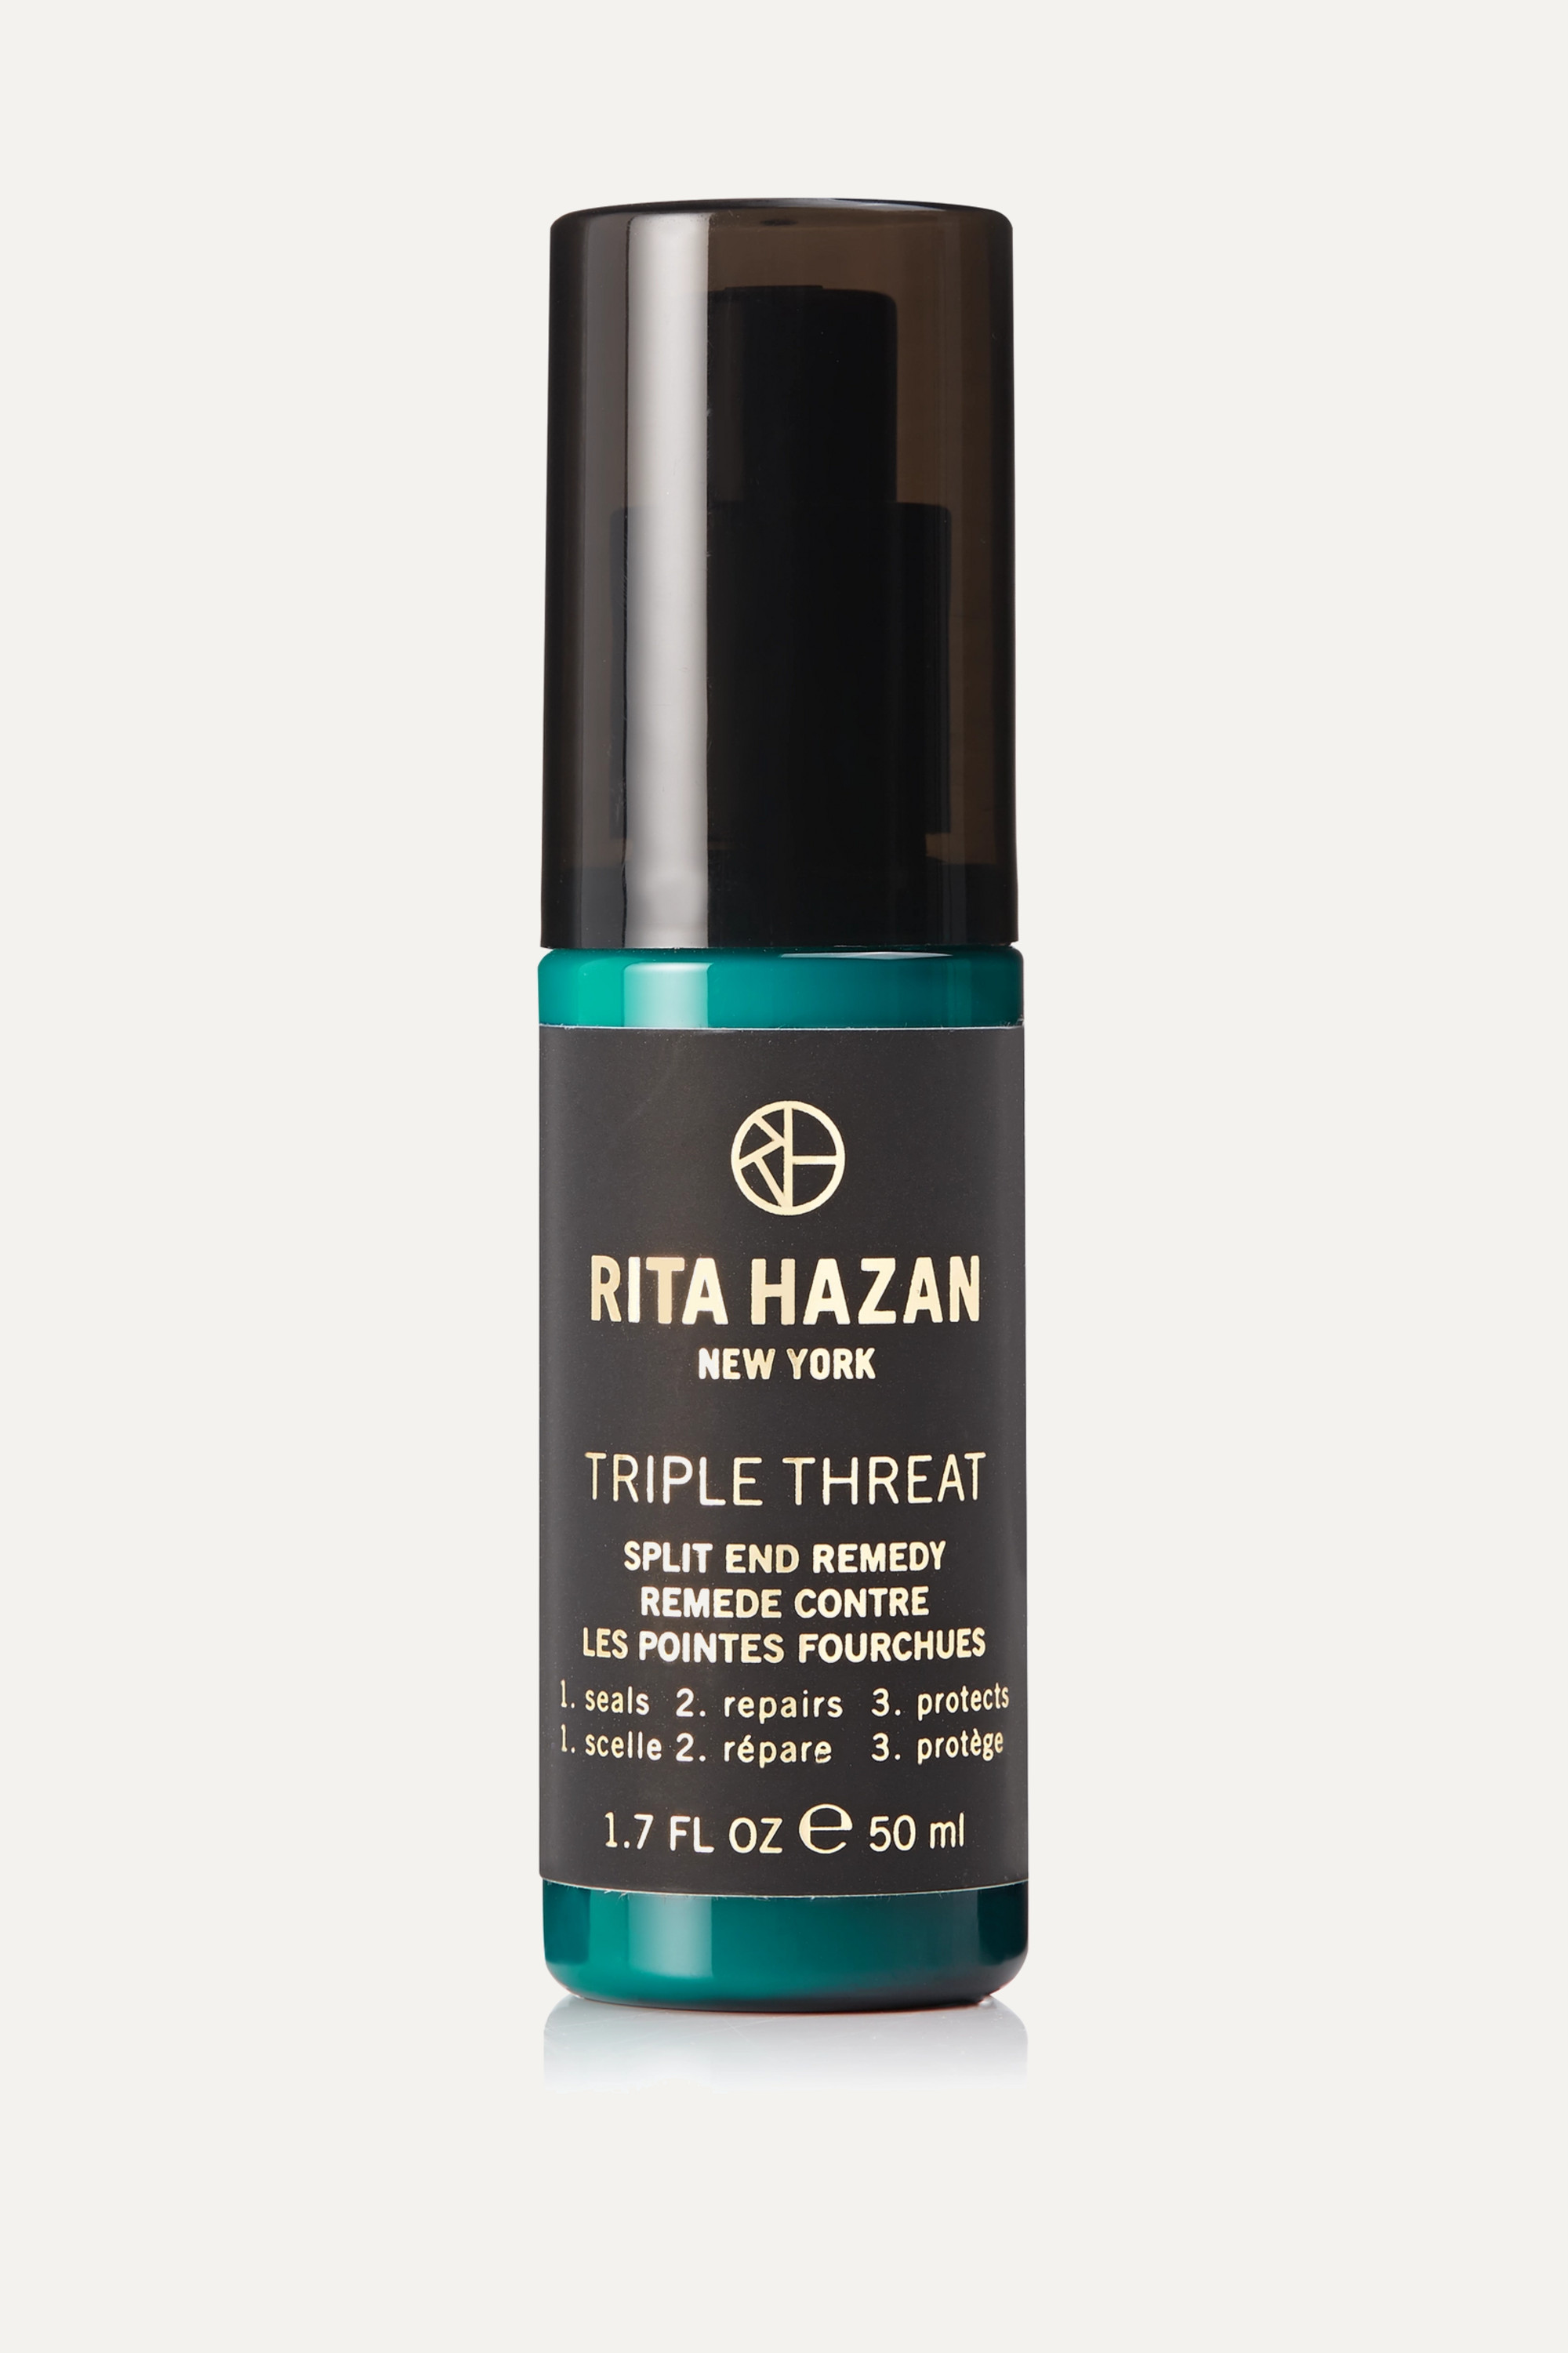 RITA HAZAN Triple Threat Split End Remedy, 50ml